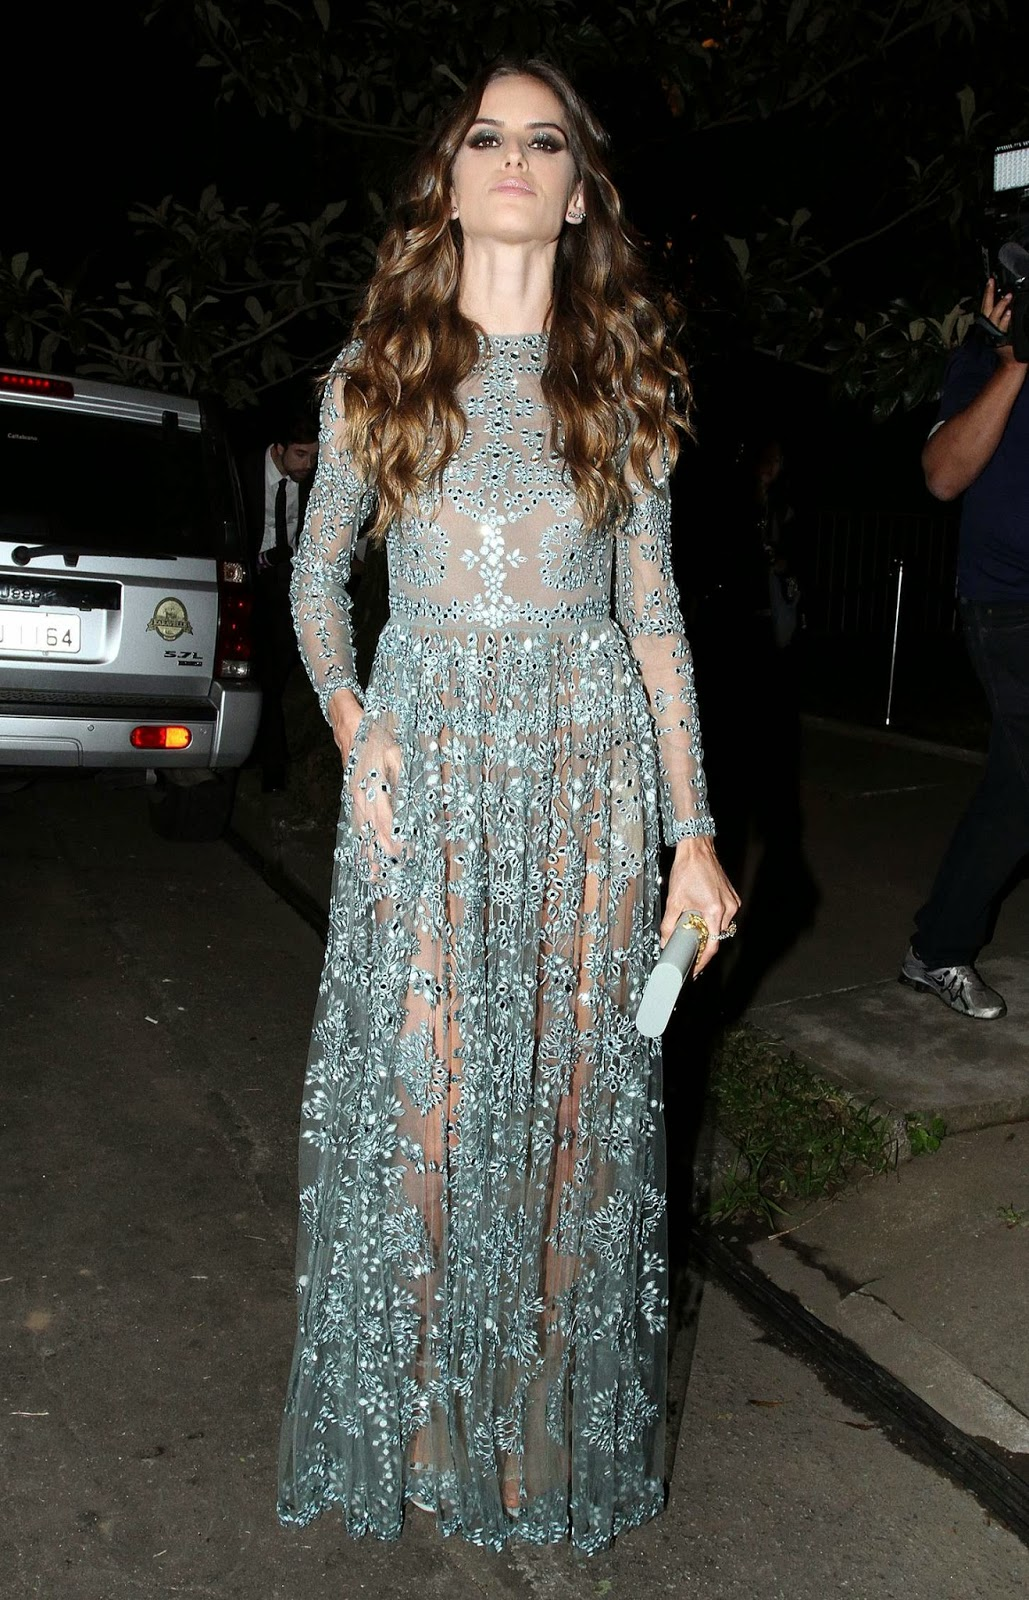 Izabel Goulart in a sheer embellished dress at the 5th Annual amfAR Inspiration Gala in Sao Paulo